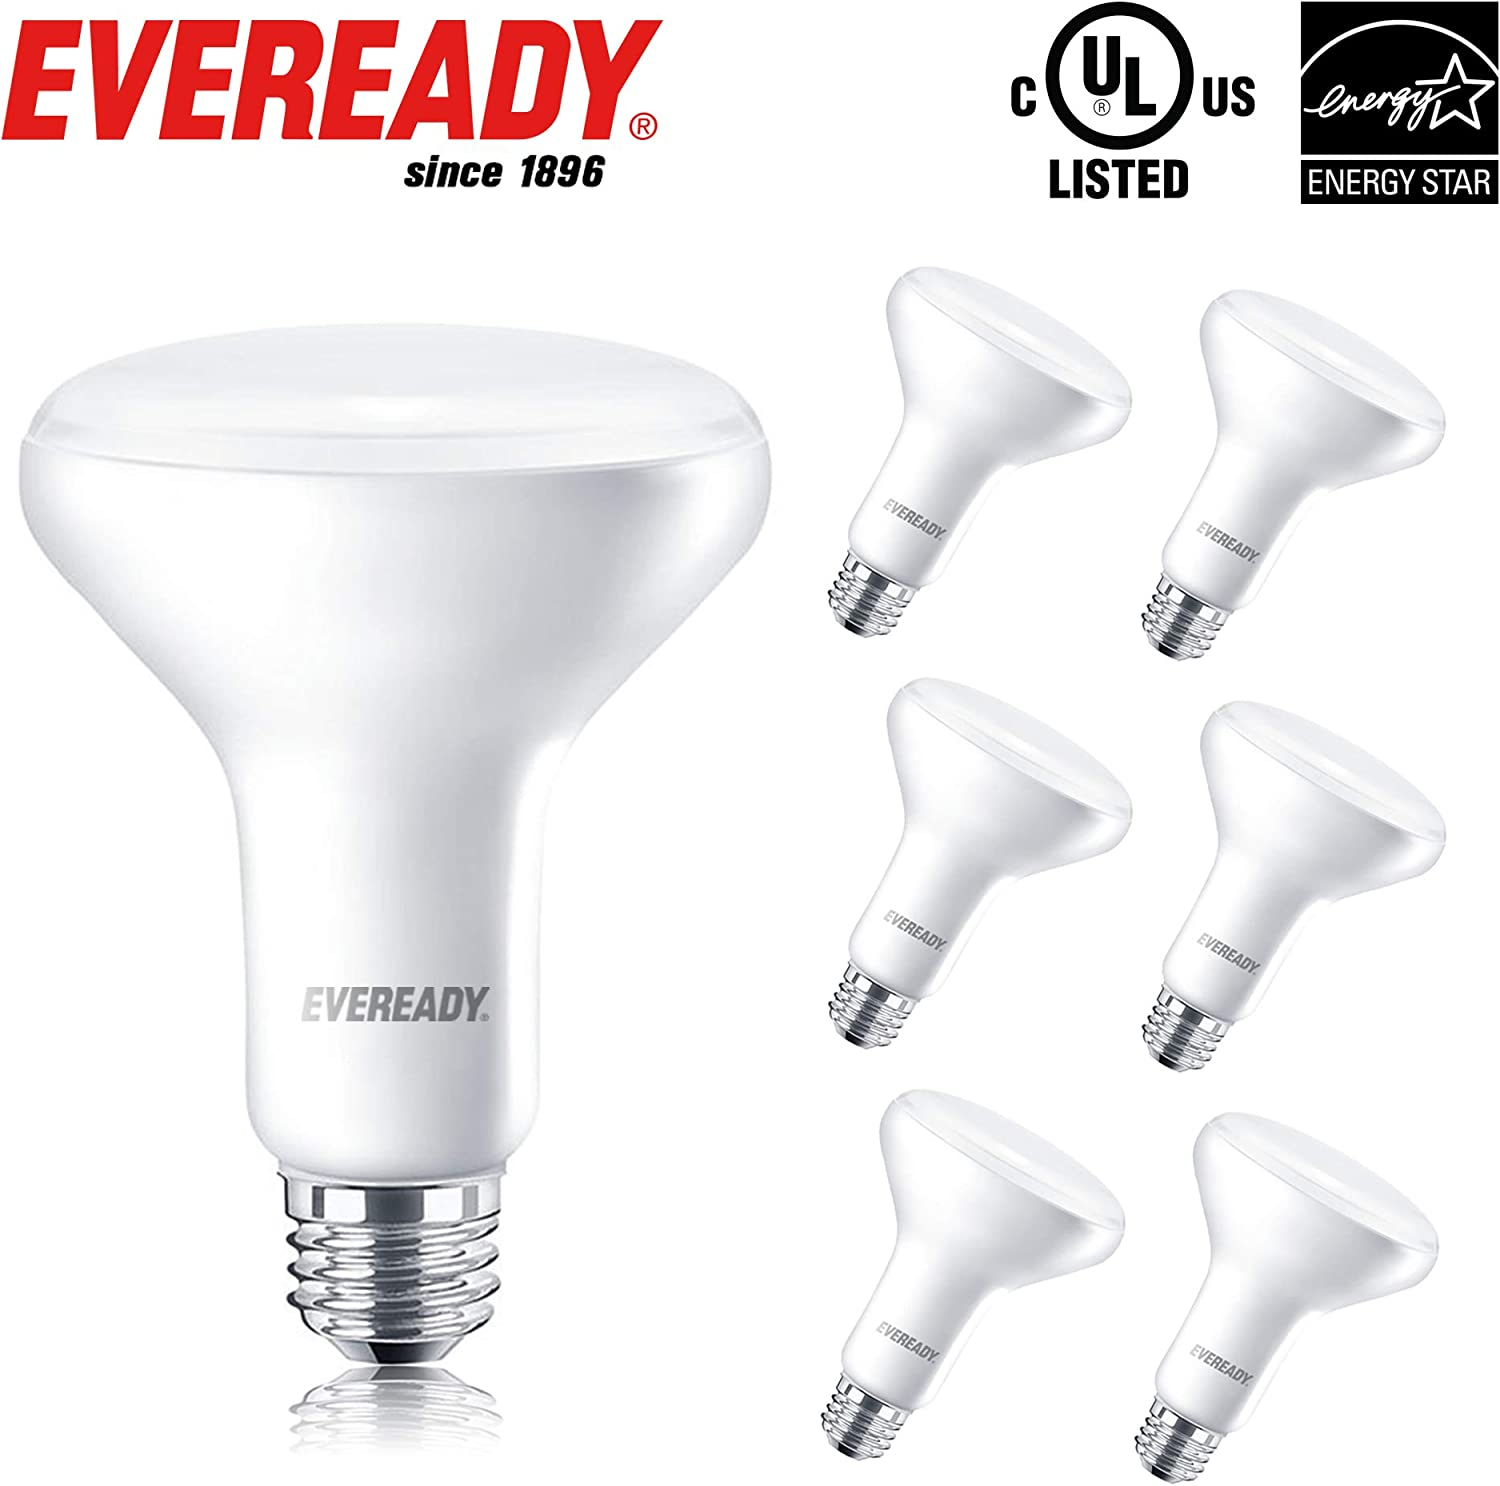 EVEREADY Led Flood Light Bulbs, BR30, 65 Watts Equivalent (10W Led Bulb), 850 Lumen, 2700K Soft White Color, Dimmable, E26 Base Flood Lights for Recessed Cans, Energy Star and UL Certified – 6 Pack